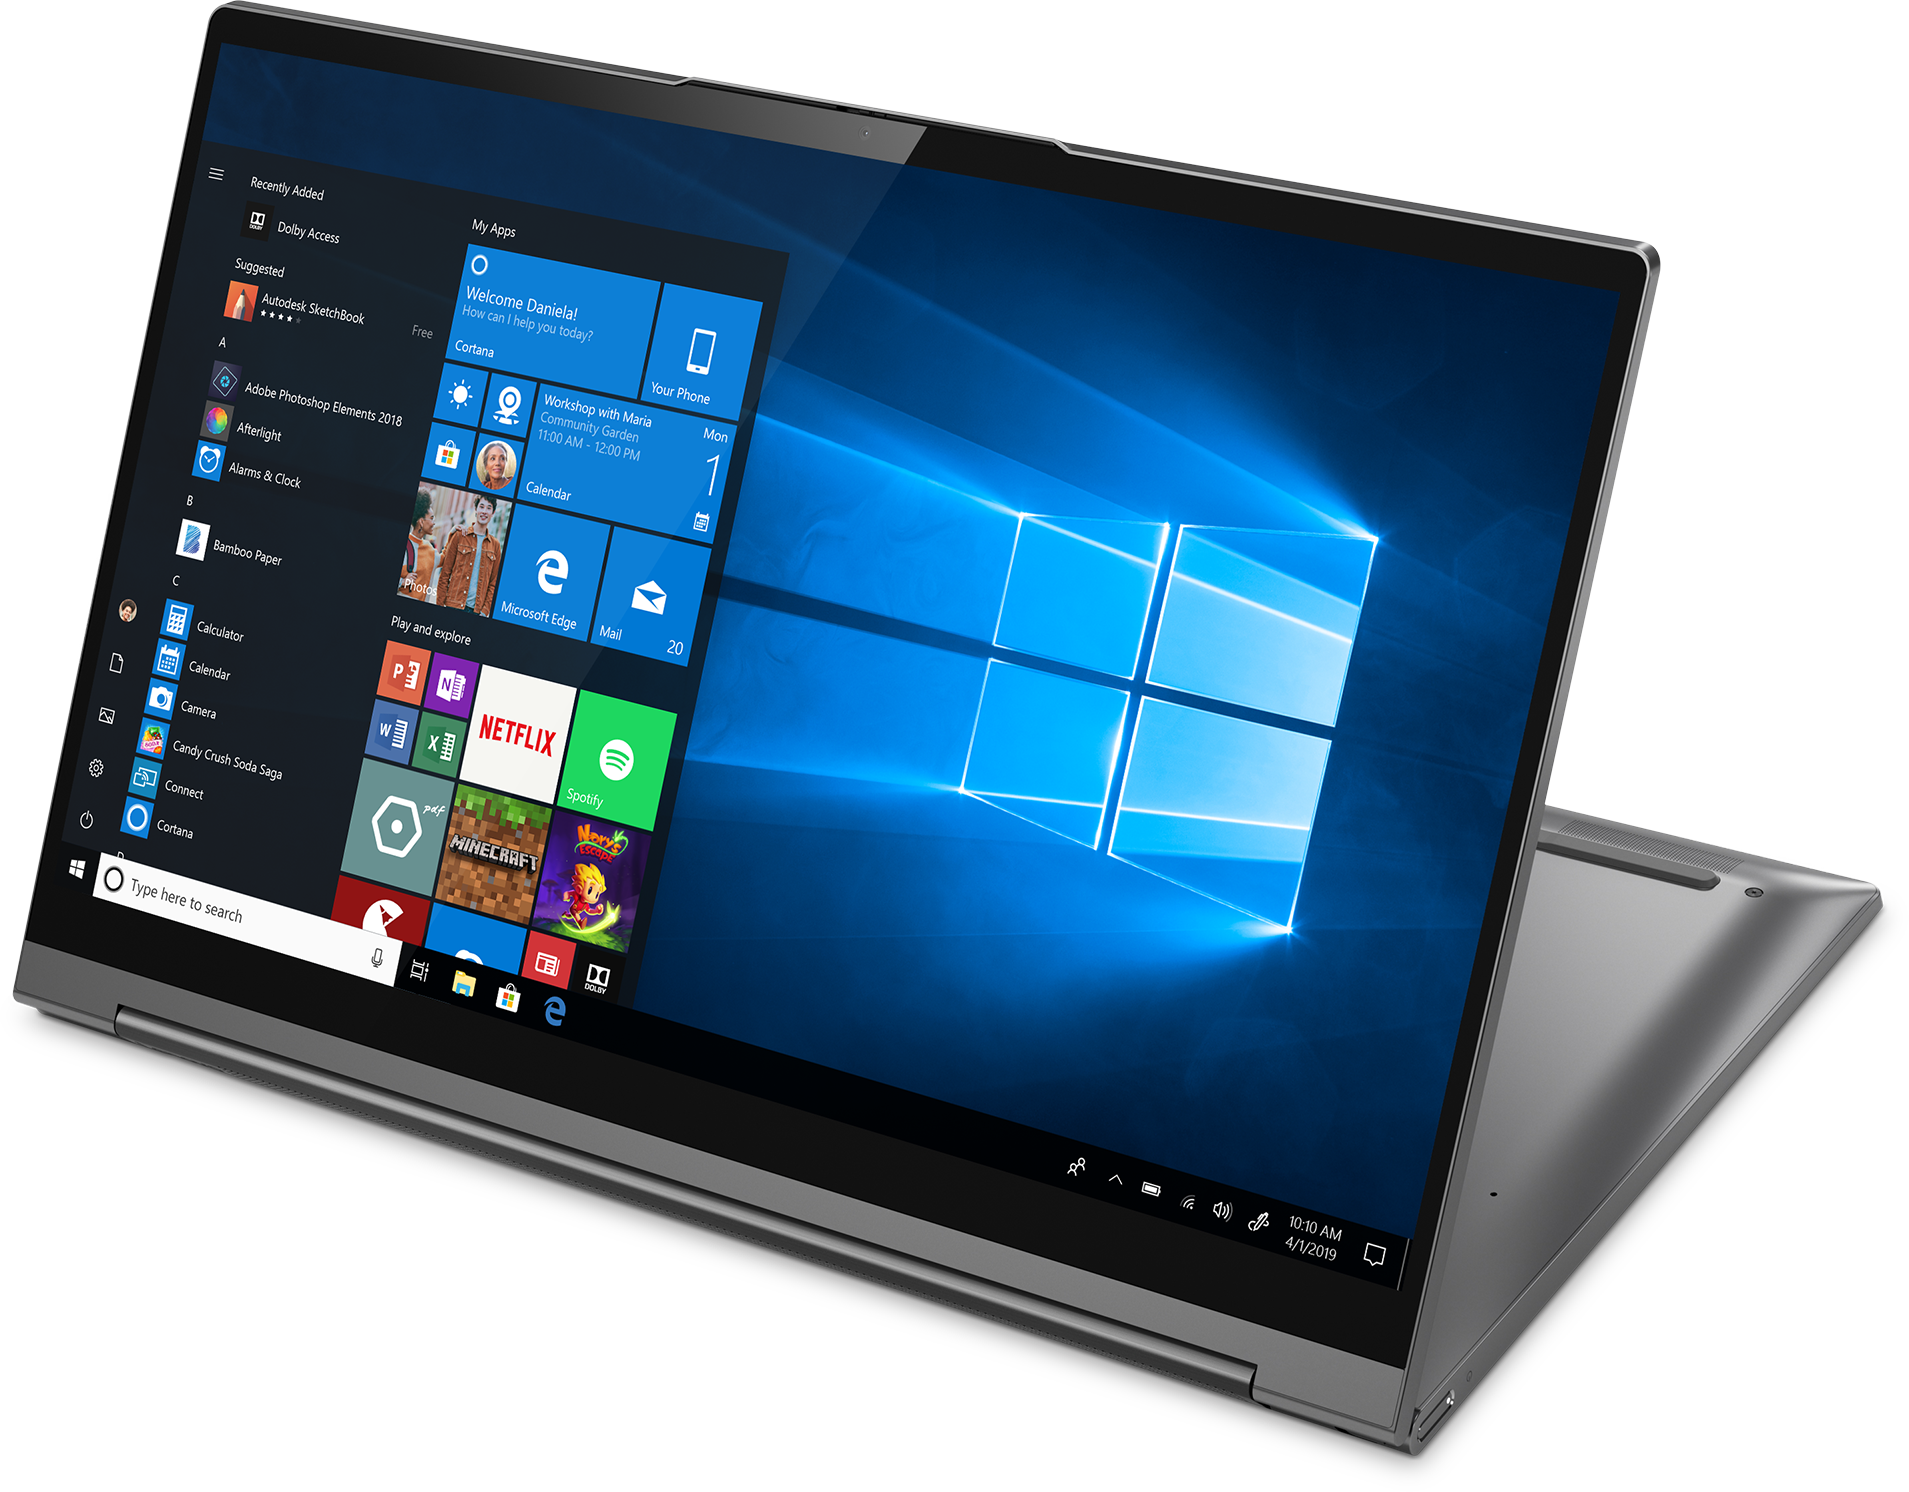 Lenovo Yoga C940 Laptop; Available for Purchase [RJOVenturesInc.com]